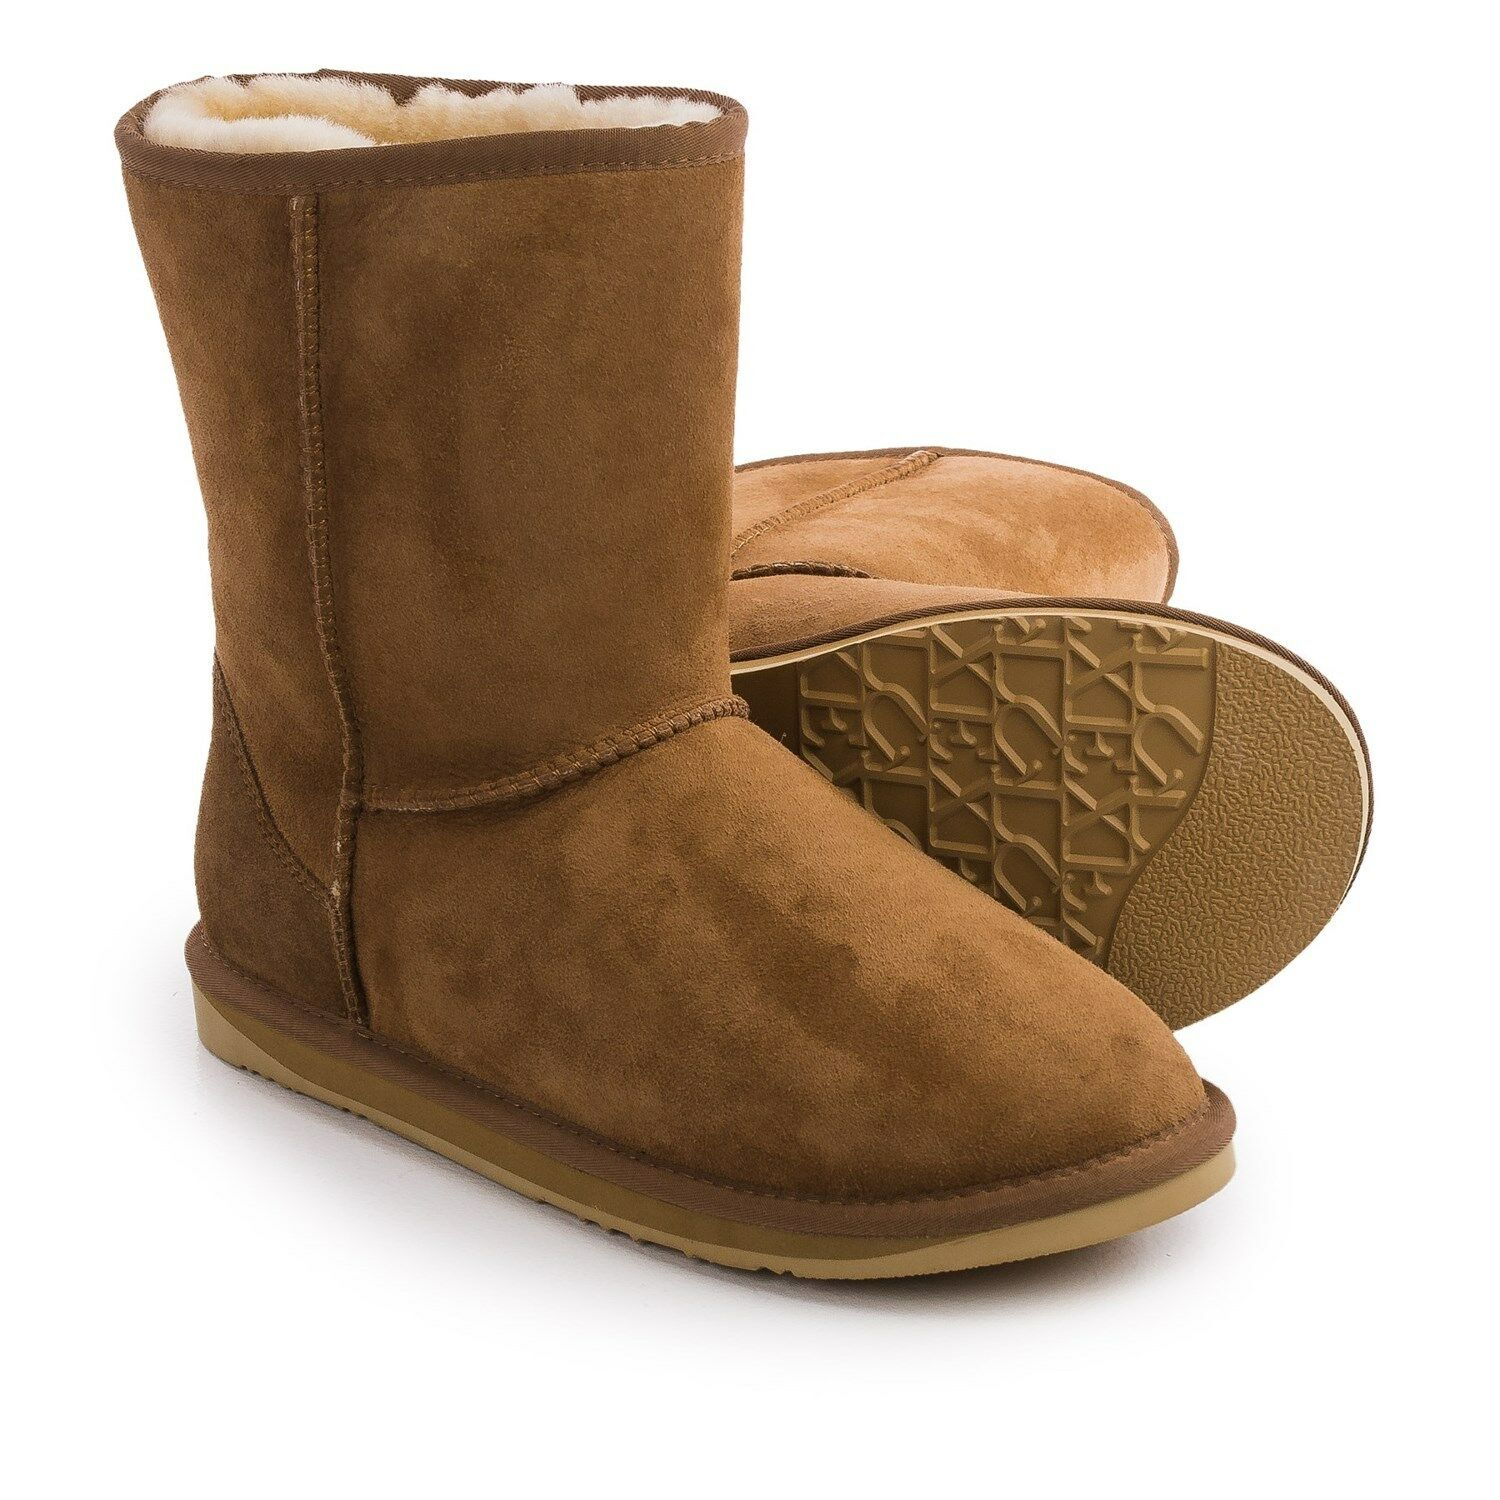 New Mens Australia Luxe Collective Cosy Short Boots Sued Sheepskin Tan Brown 7UK